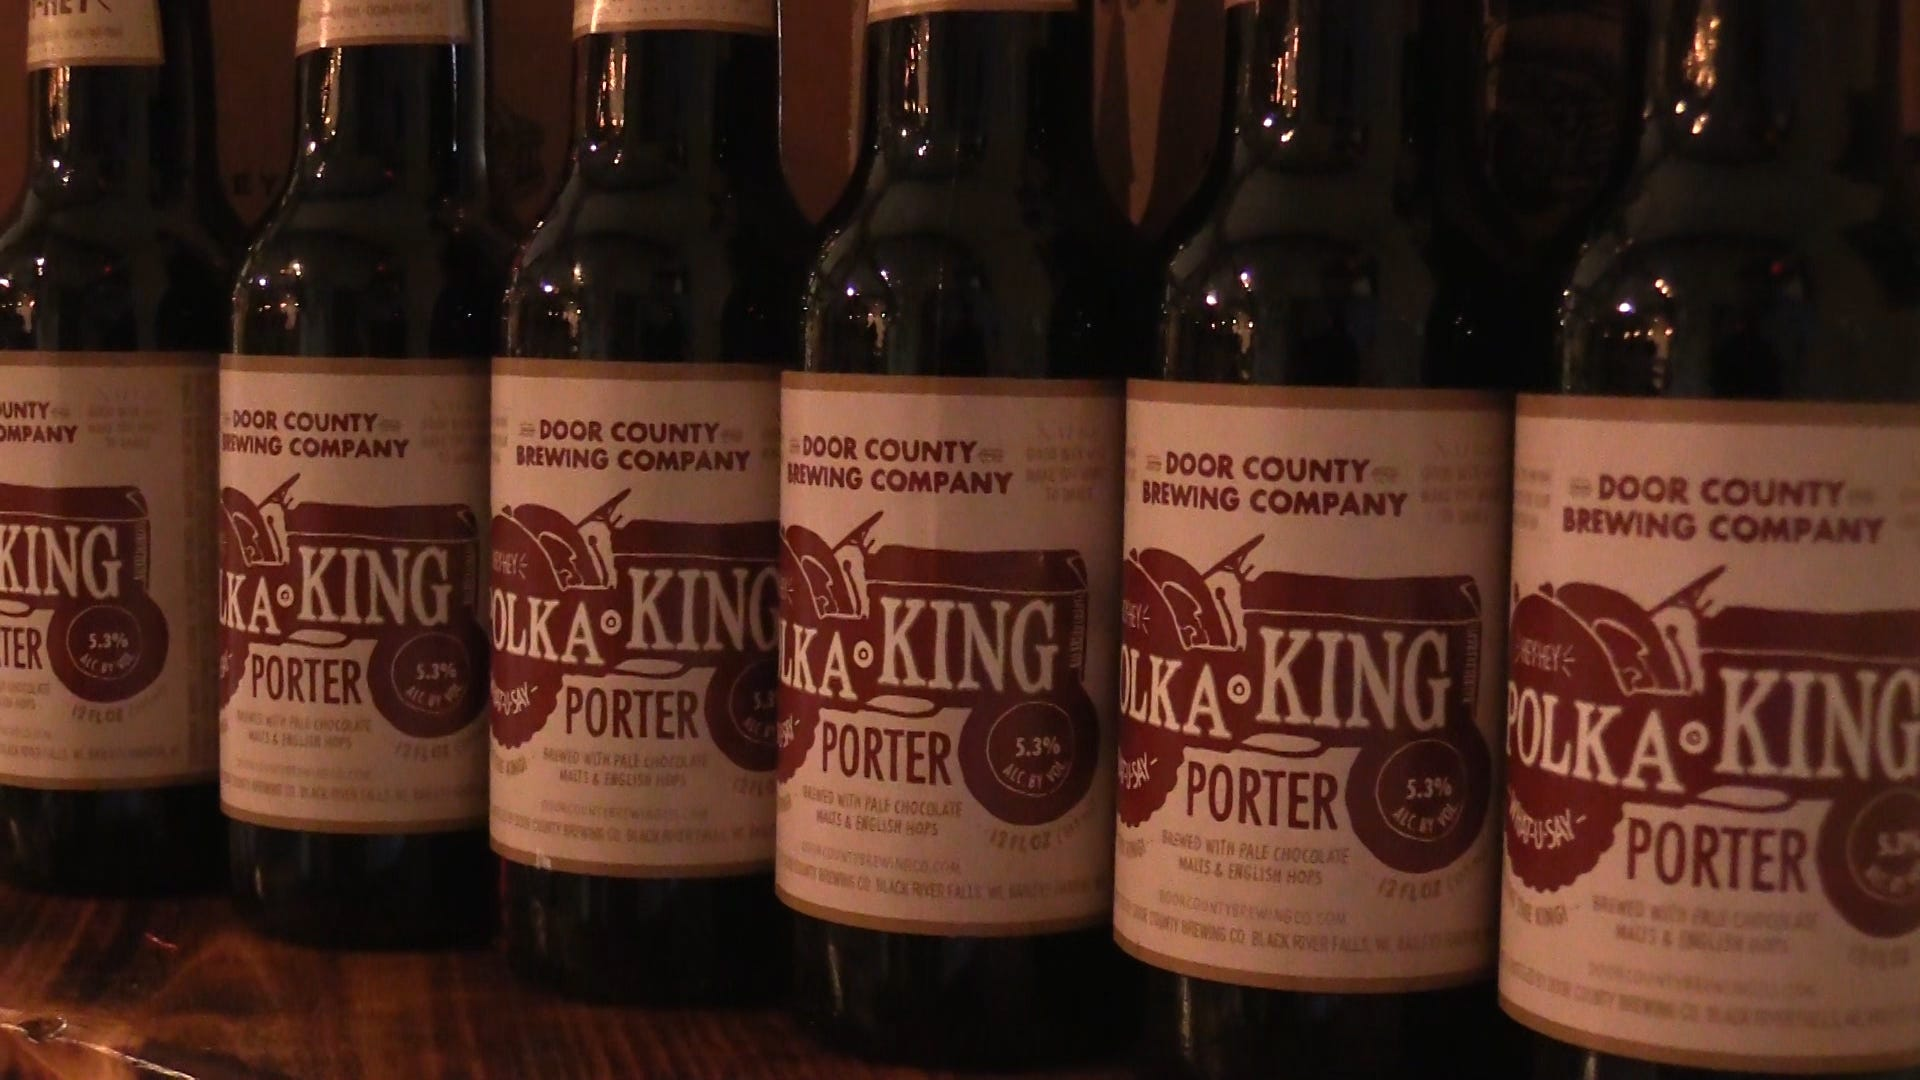 WIsBrewView: Door County Brewing reflects county's culture